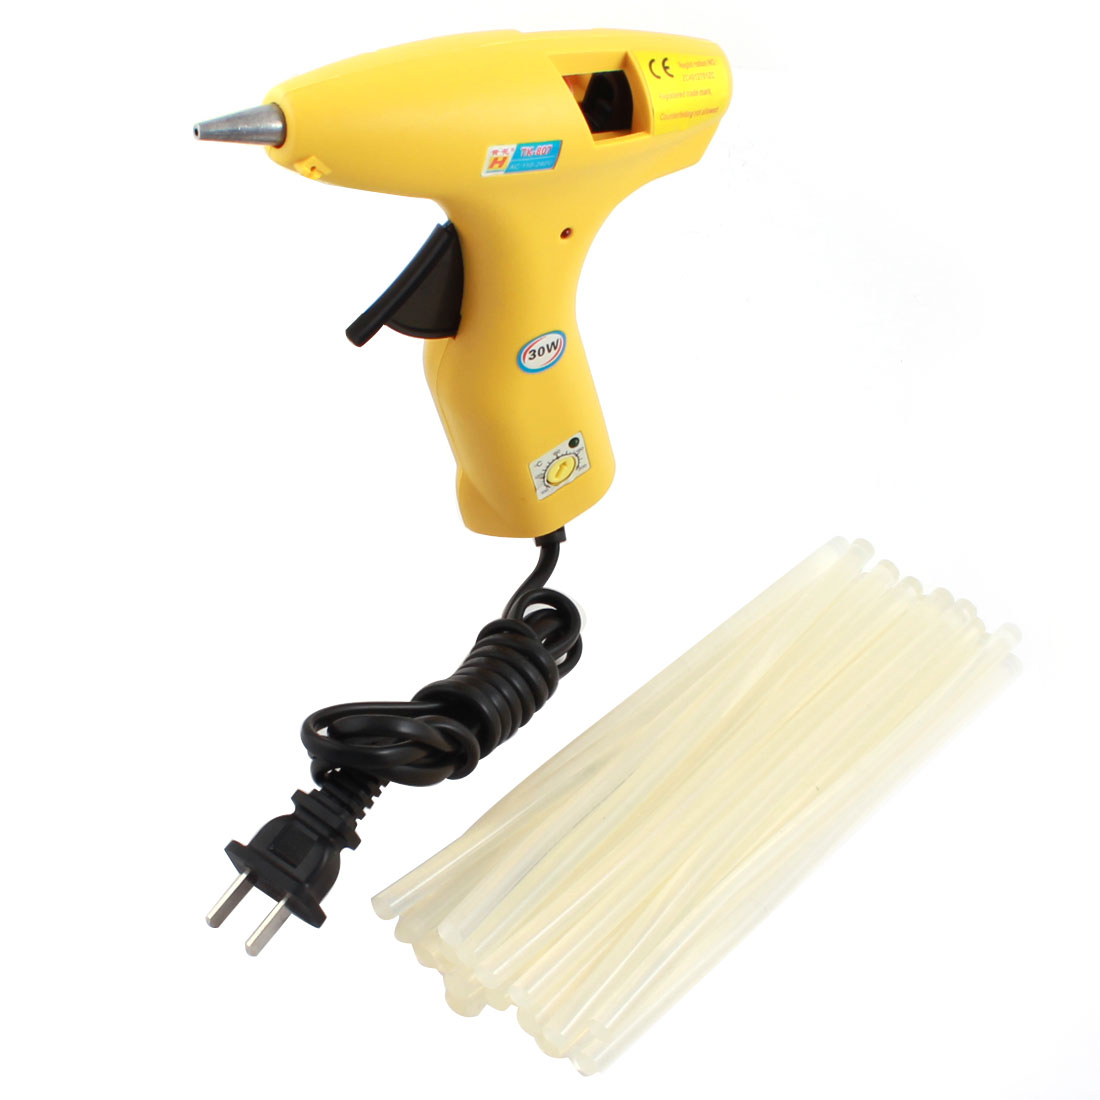 AC100V-240V US Plug Plastic Shell Arts Craft Crafting 30W Yellow Glue Gun + 20Pcs 7x180mm Hot Melt Adhesive Sticks